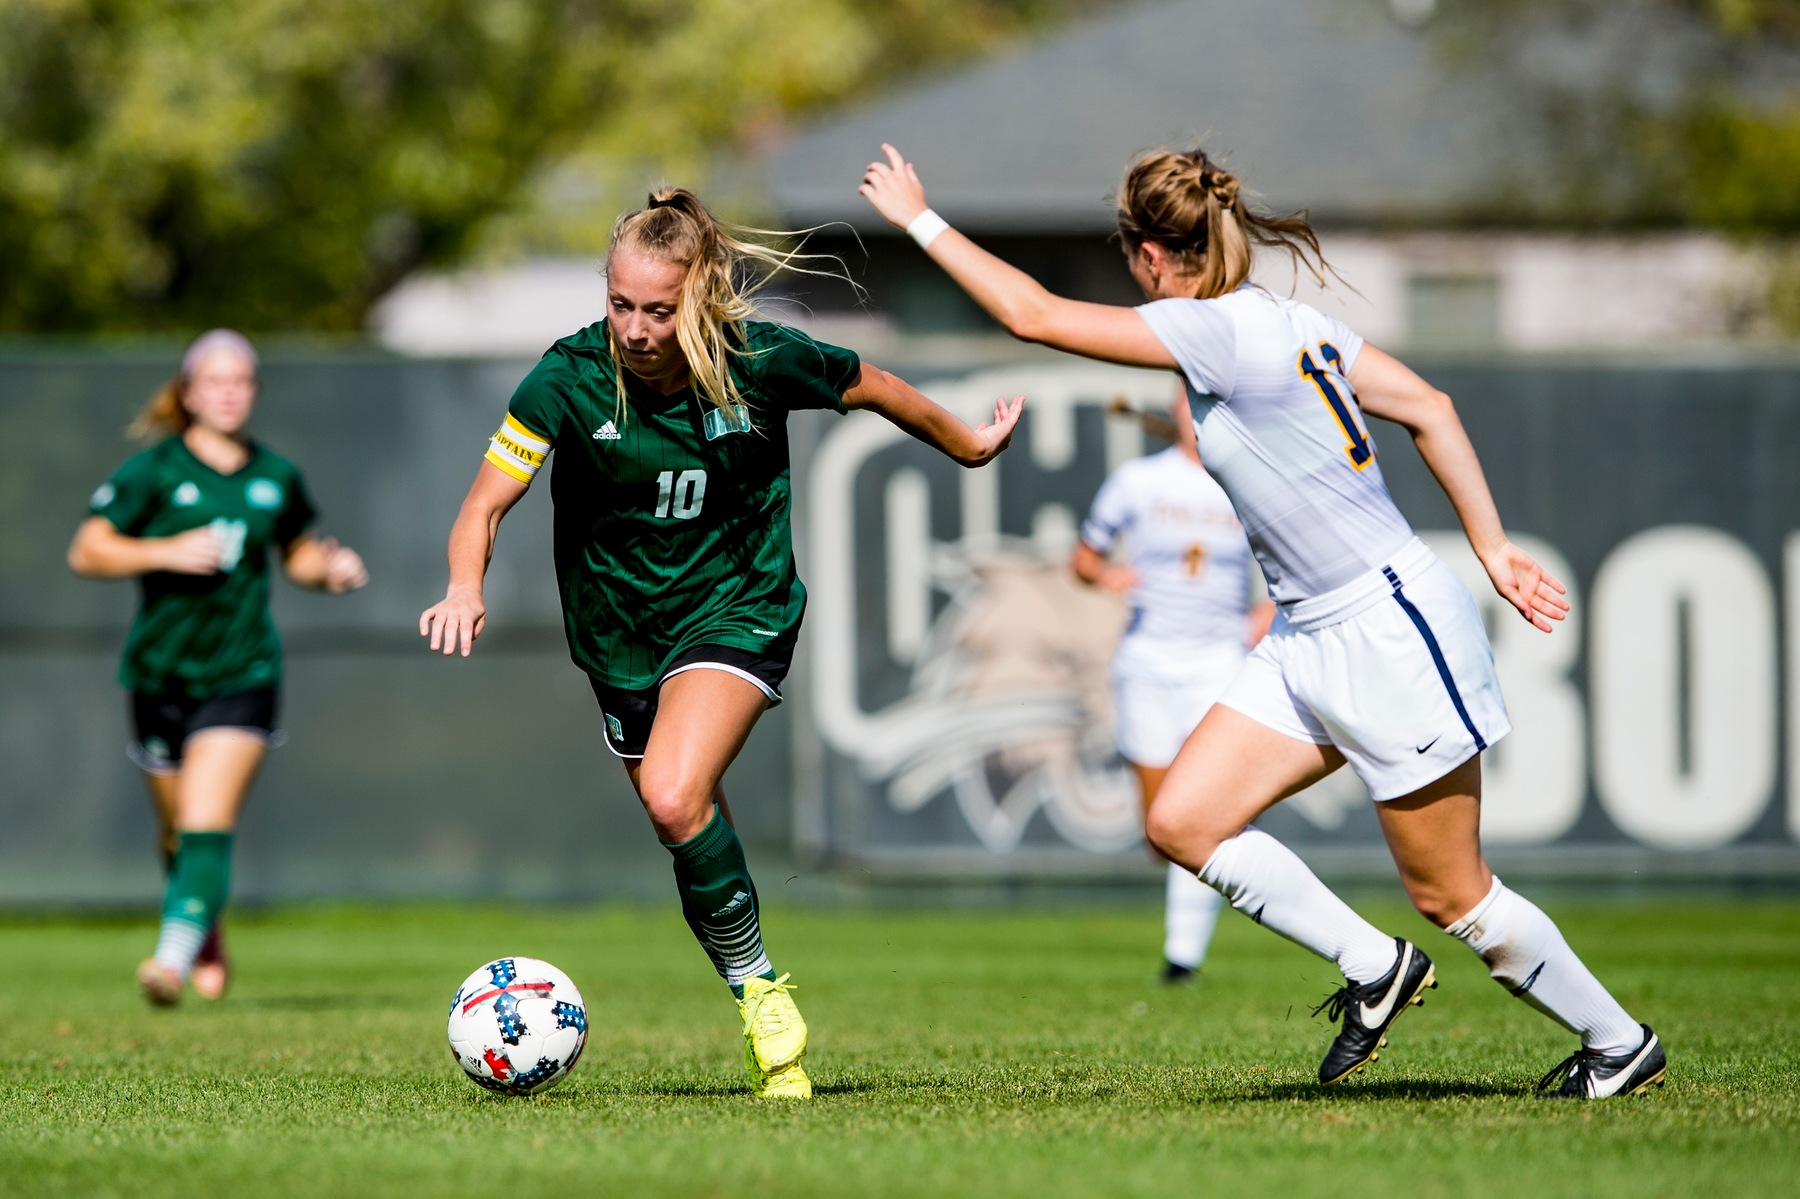 Ohio Soccer Falls to Toledo, 2-1